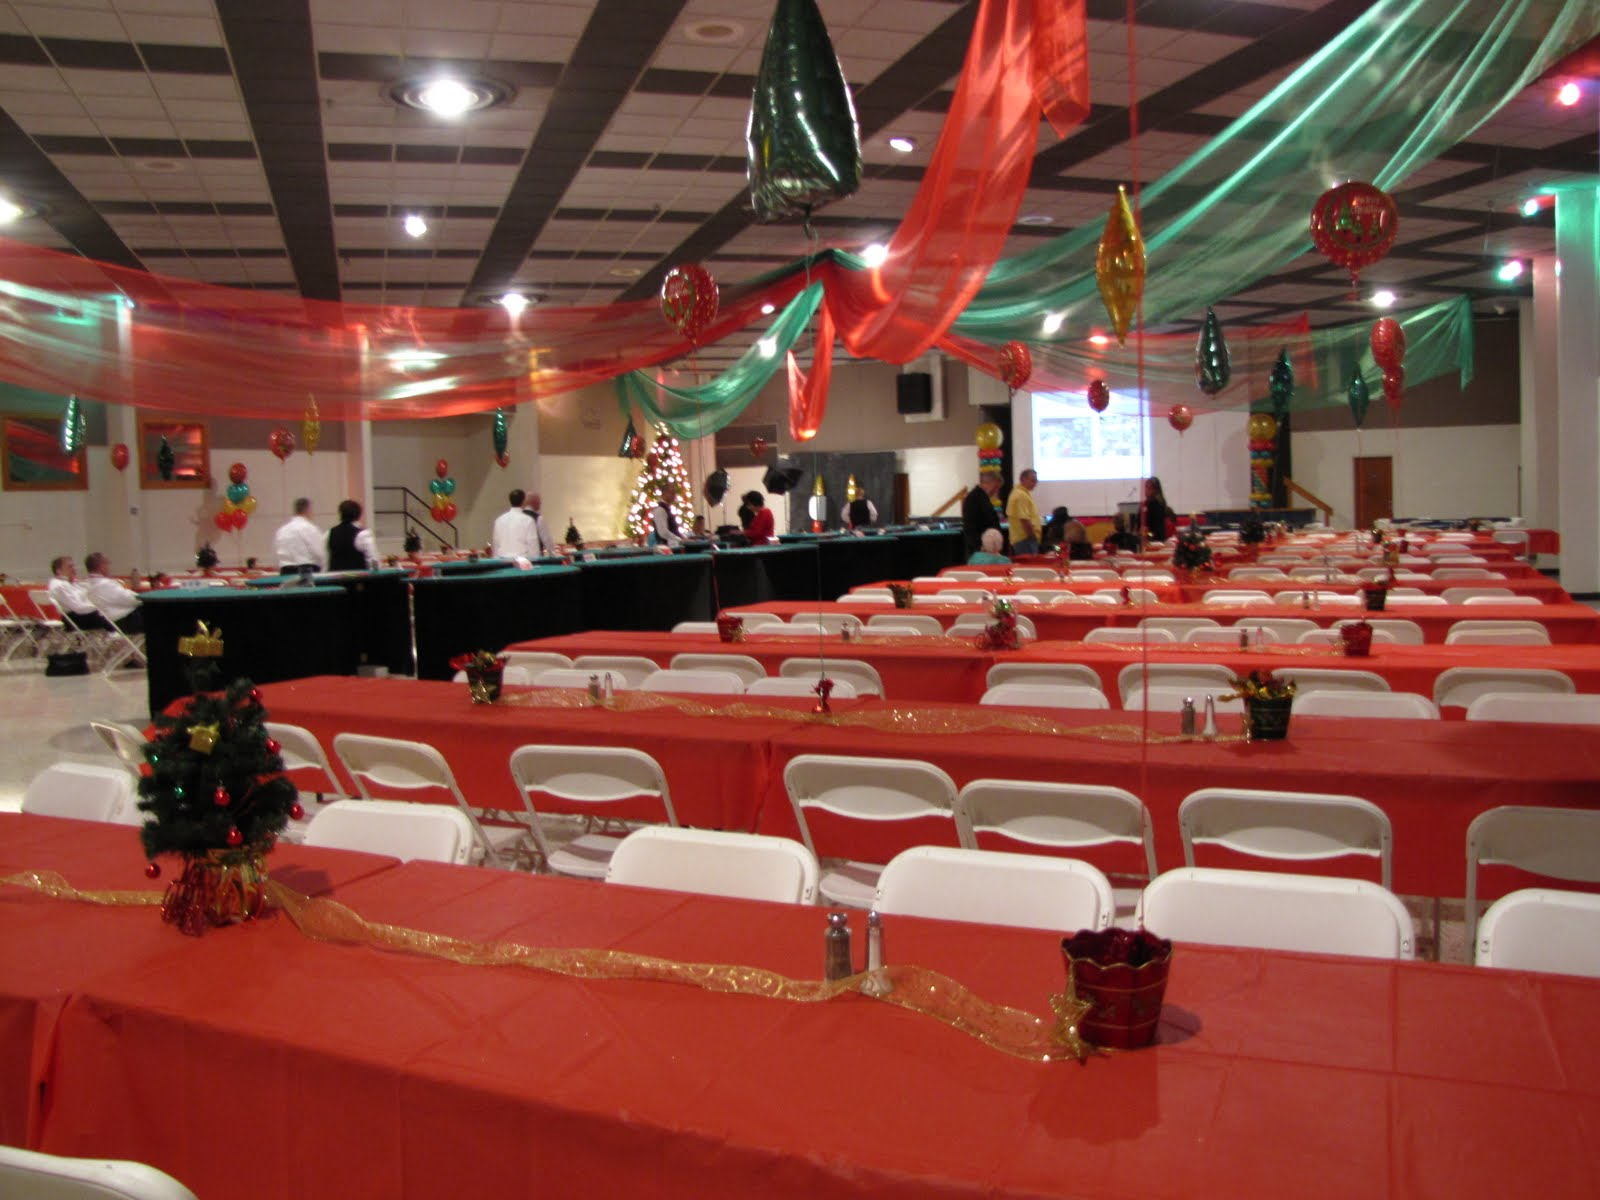 Party people event decorating company christmas party for Christmas ceiling decorations